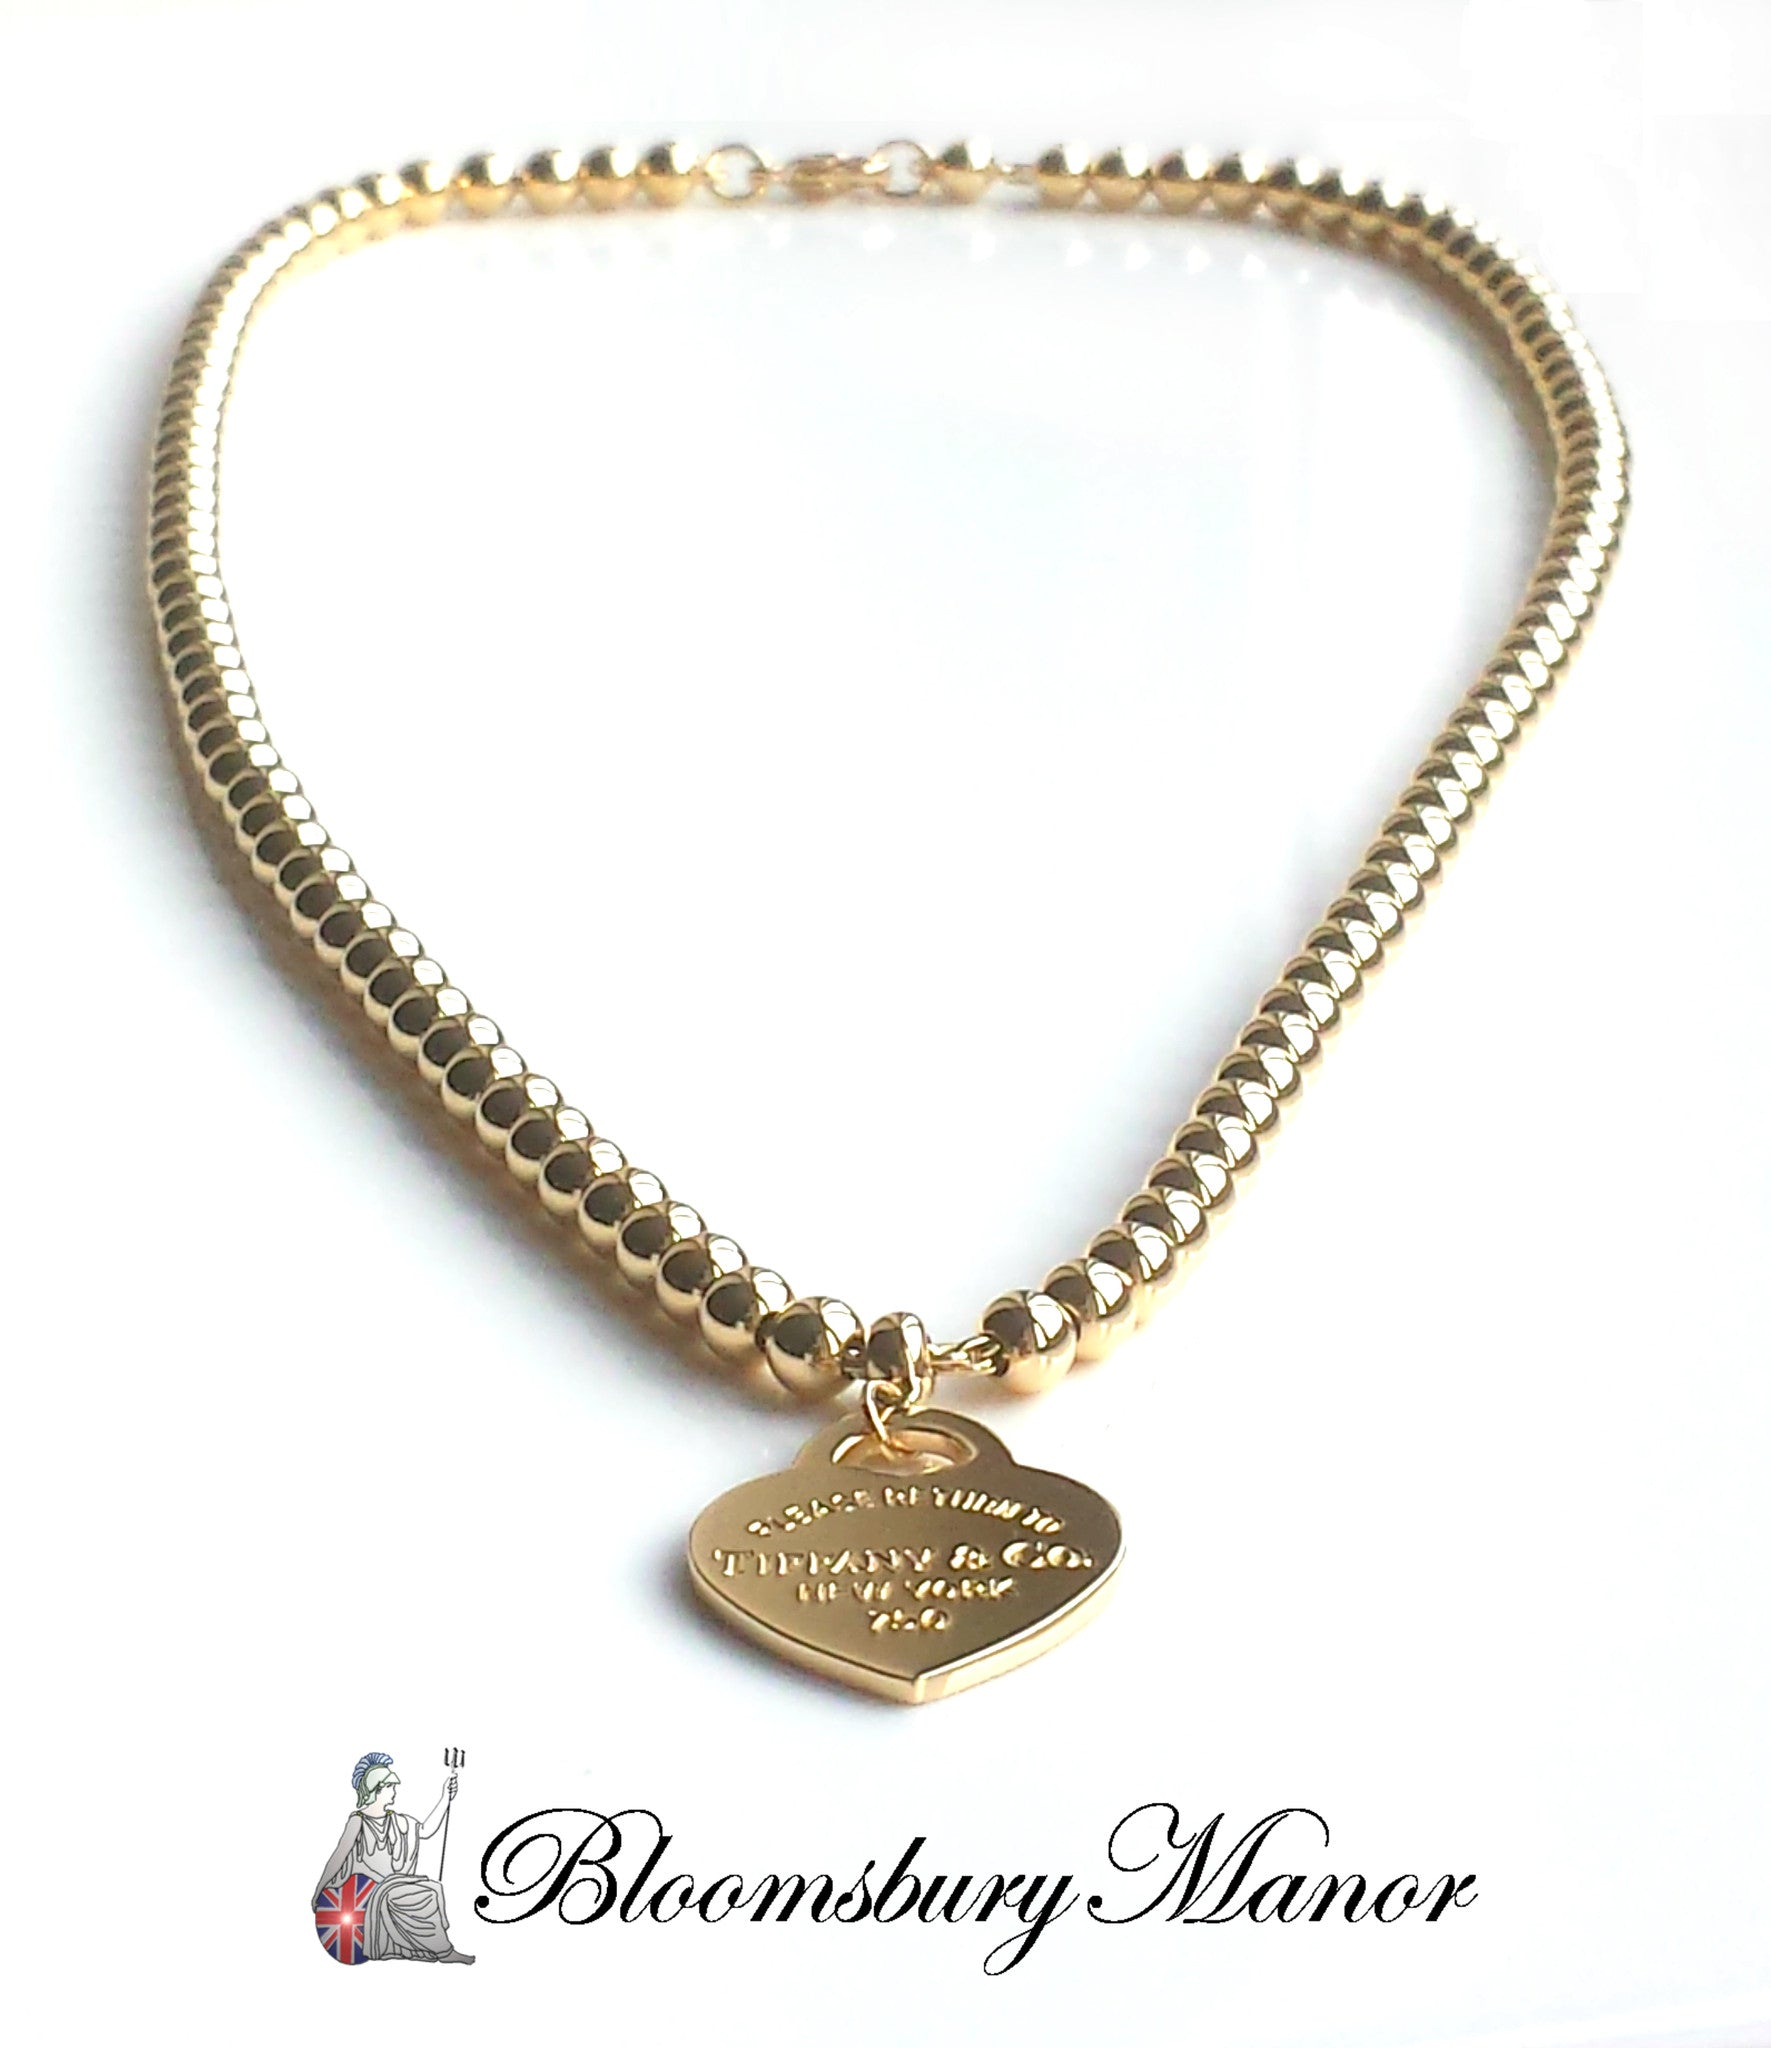 aa6d84889 Tiffany & Co. Return to™ 18k Yellow Gold Small Bead Necklace with Hear -  Bloomsbury Manor Ltd